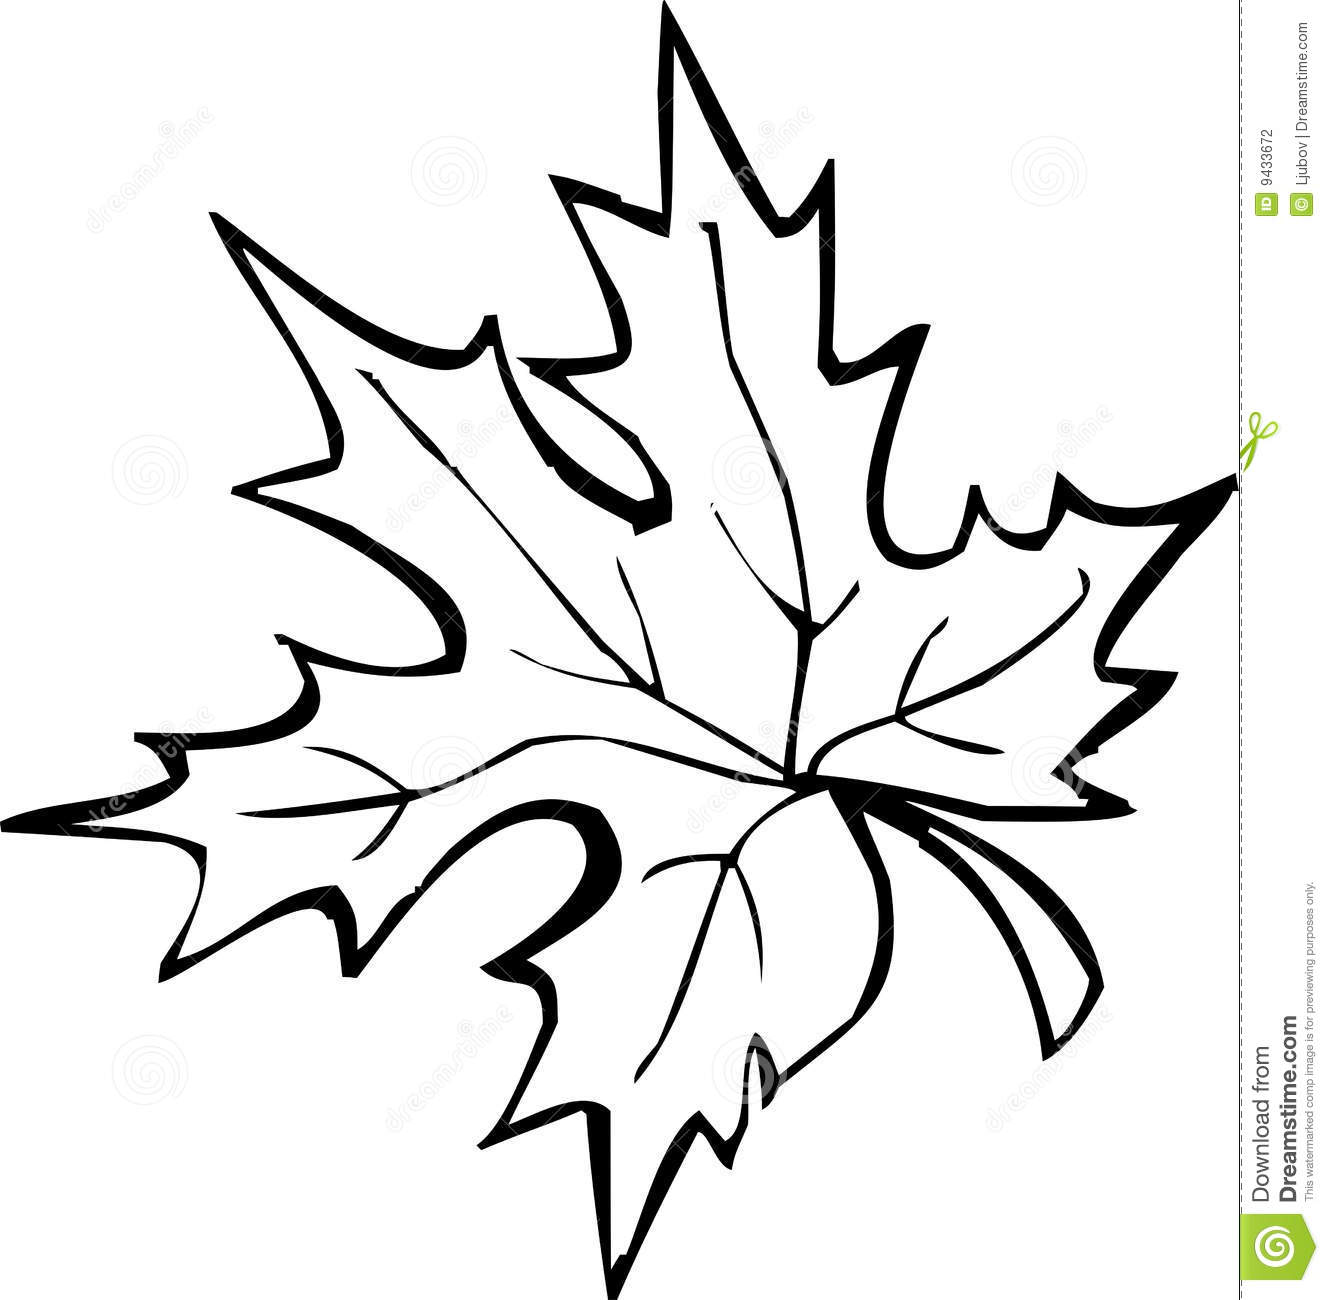 1329x1300 Maple Leaves Clipart Black And White